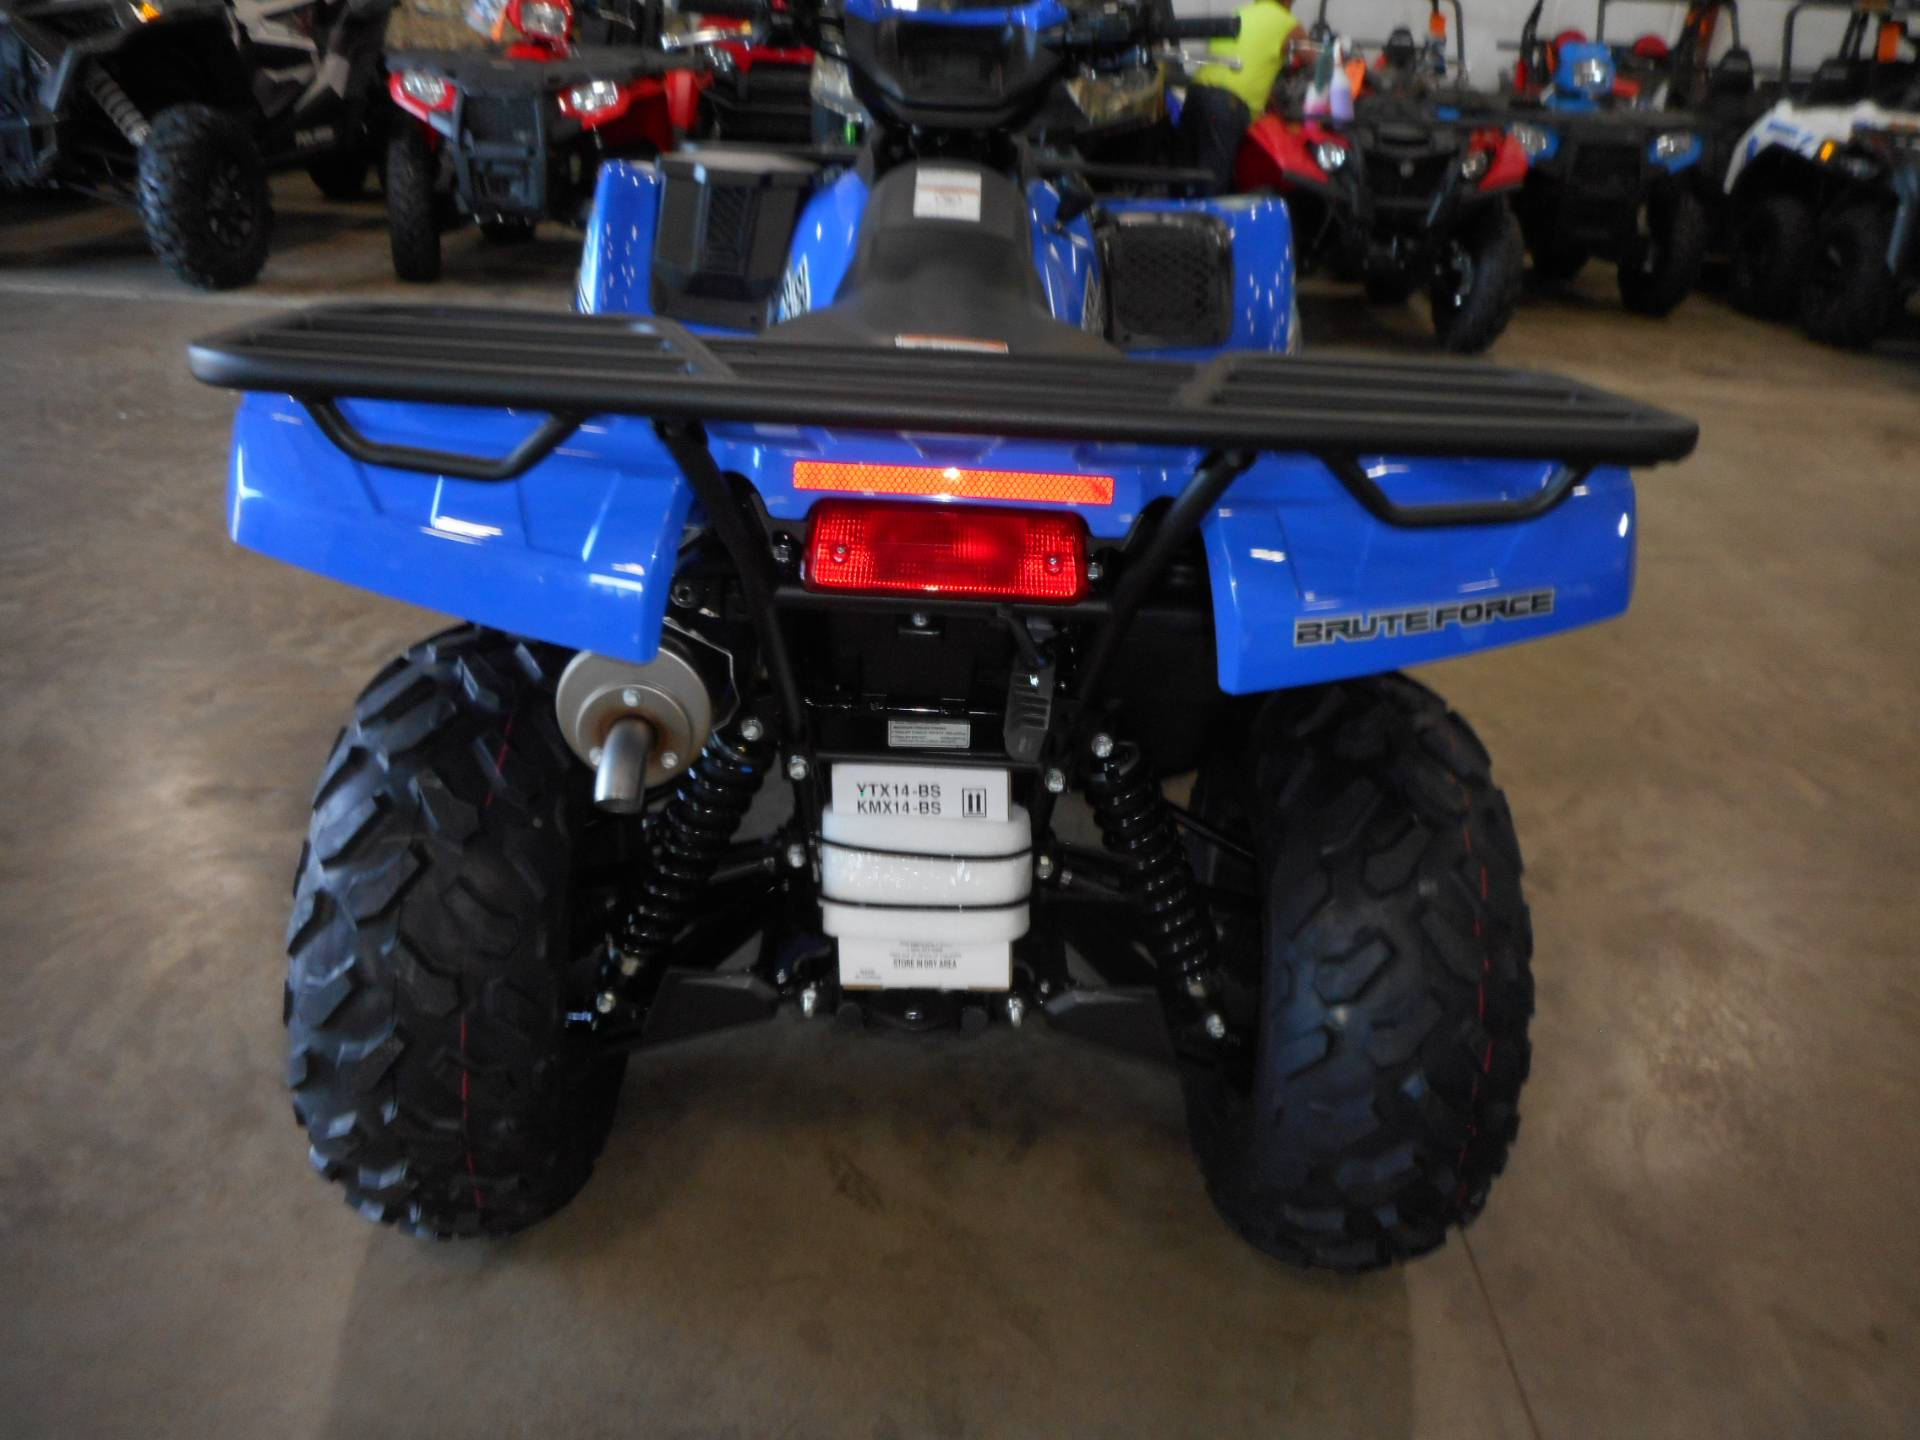 2020 Kawasaki Brute Force 750 4x4i EPS in Belvidere, Illinois - Photo 8